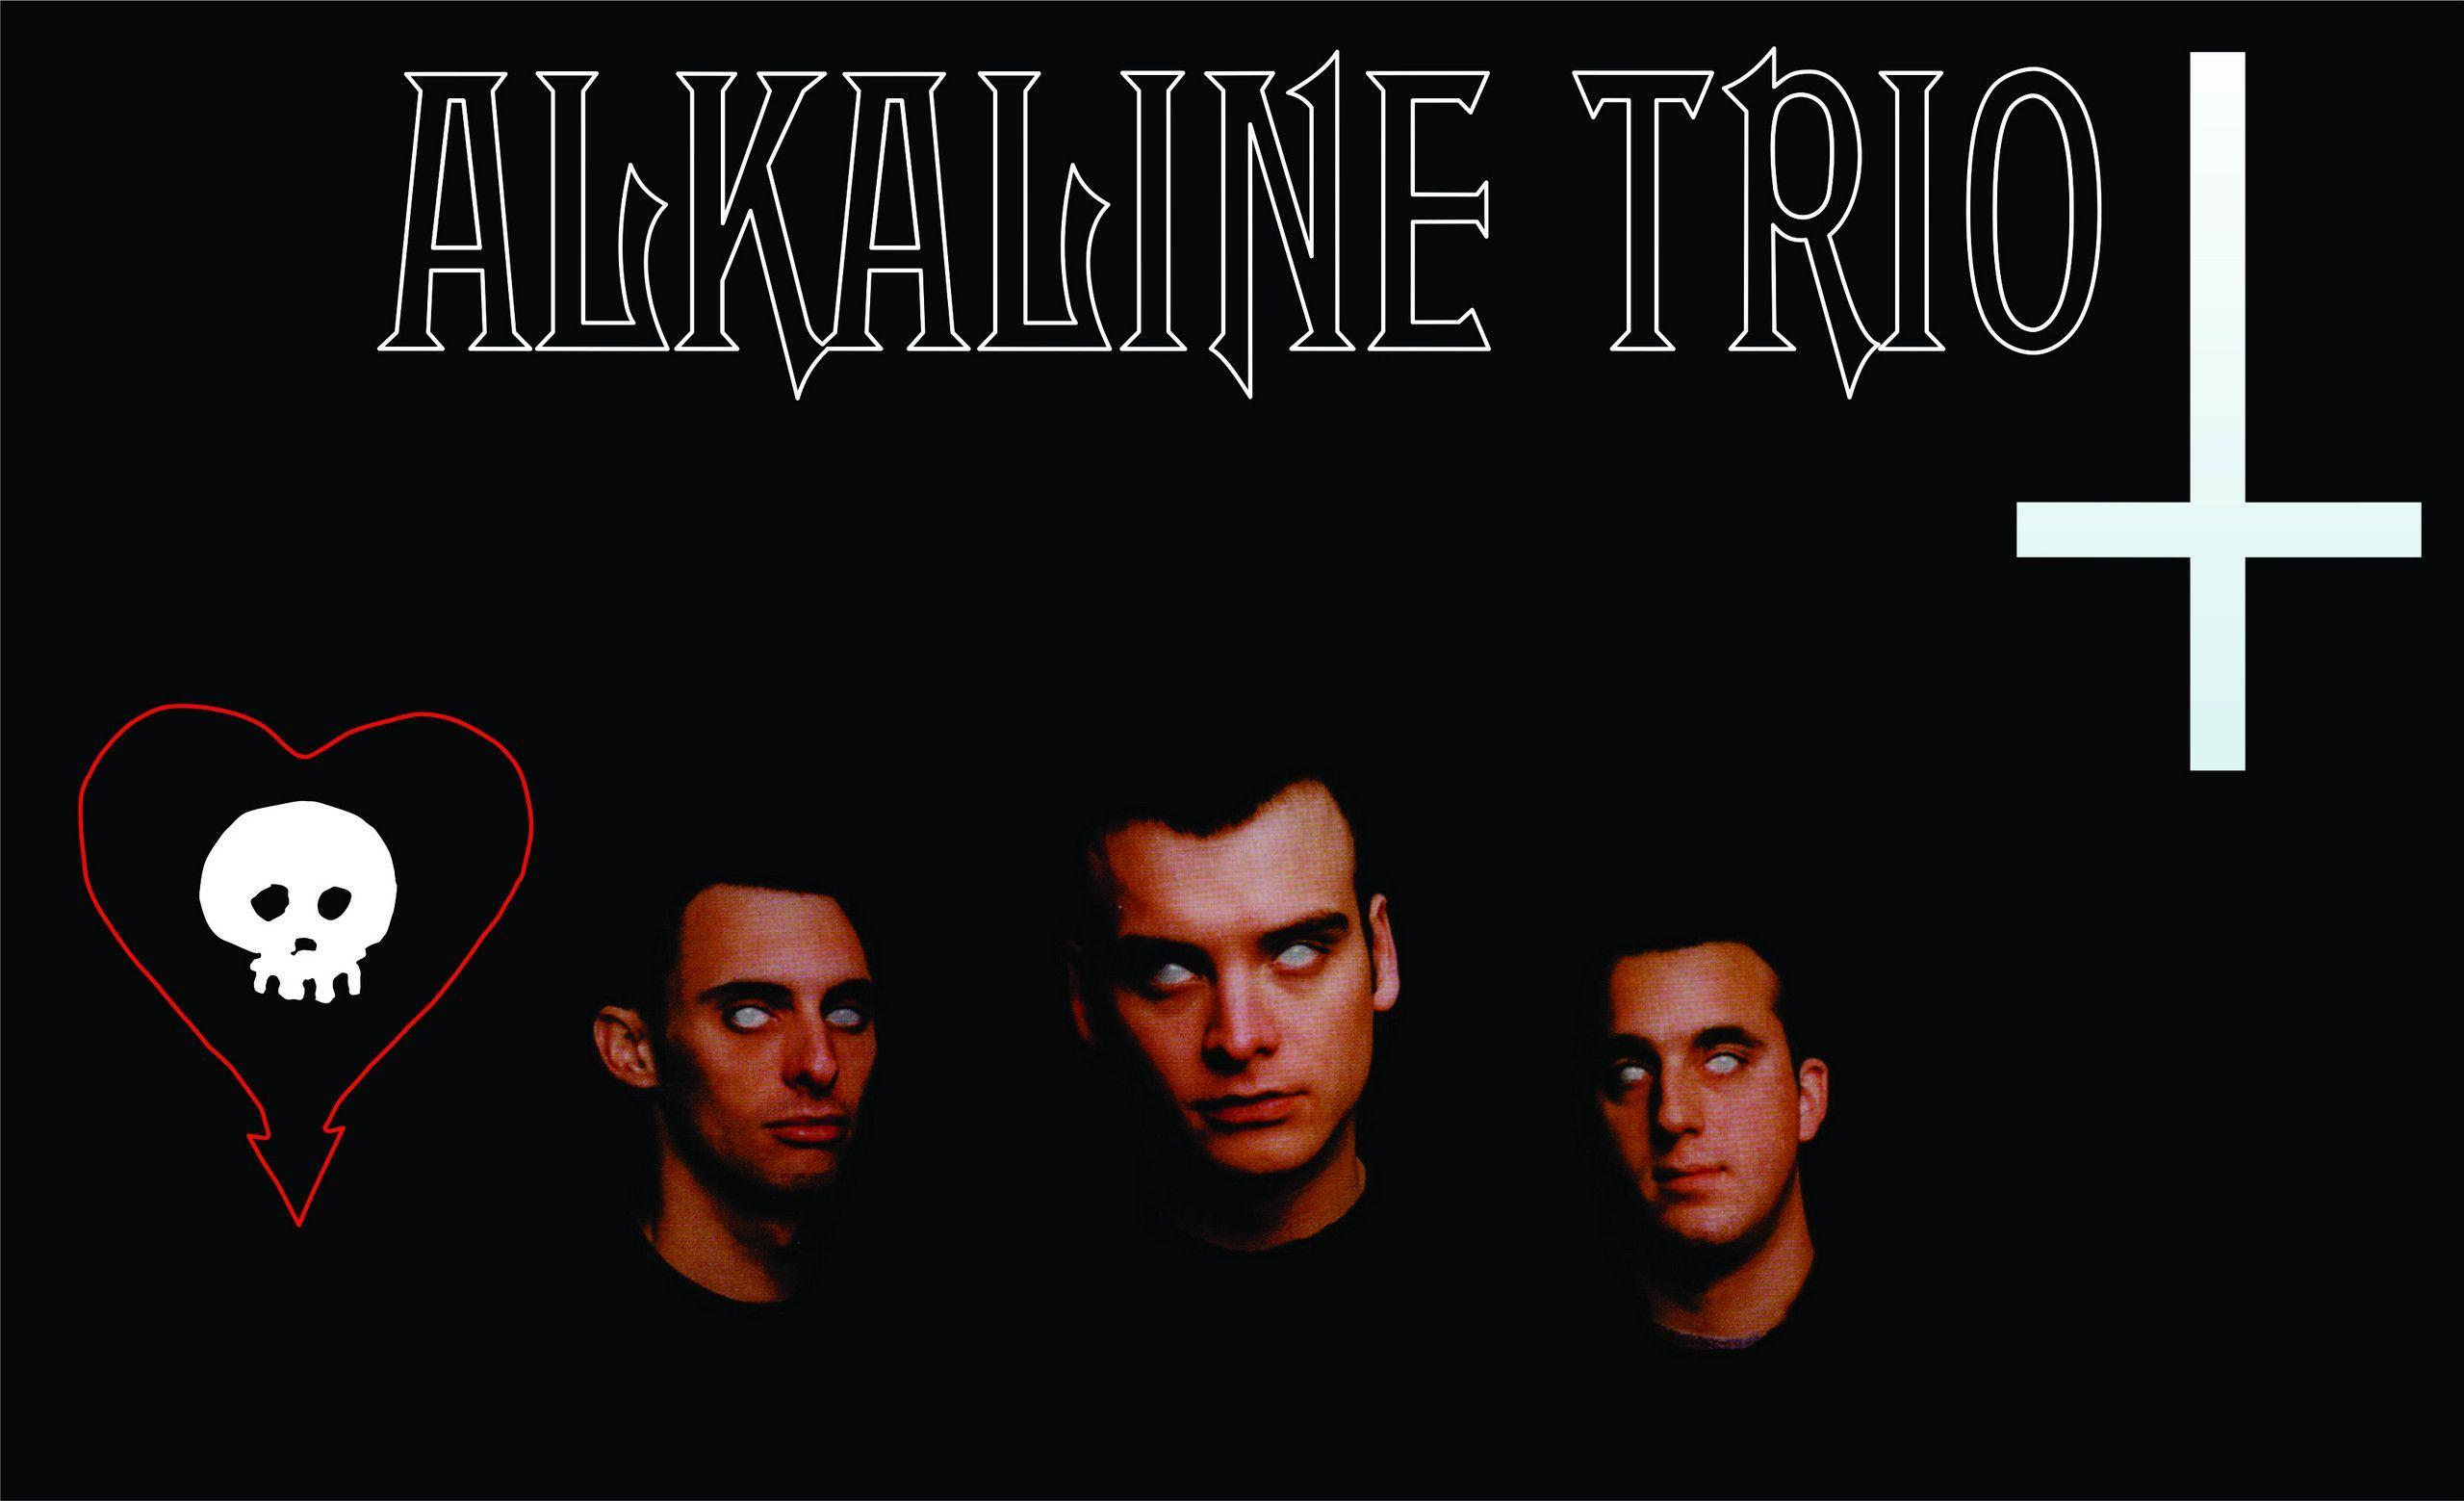 Alkaline Trio From Here To Infirmary - Alkaline Trio Photo ...